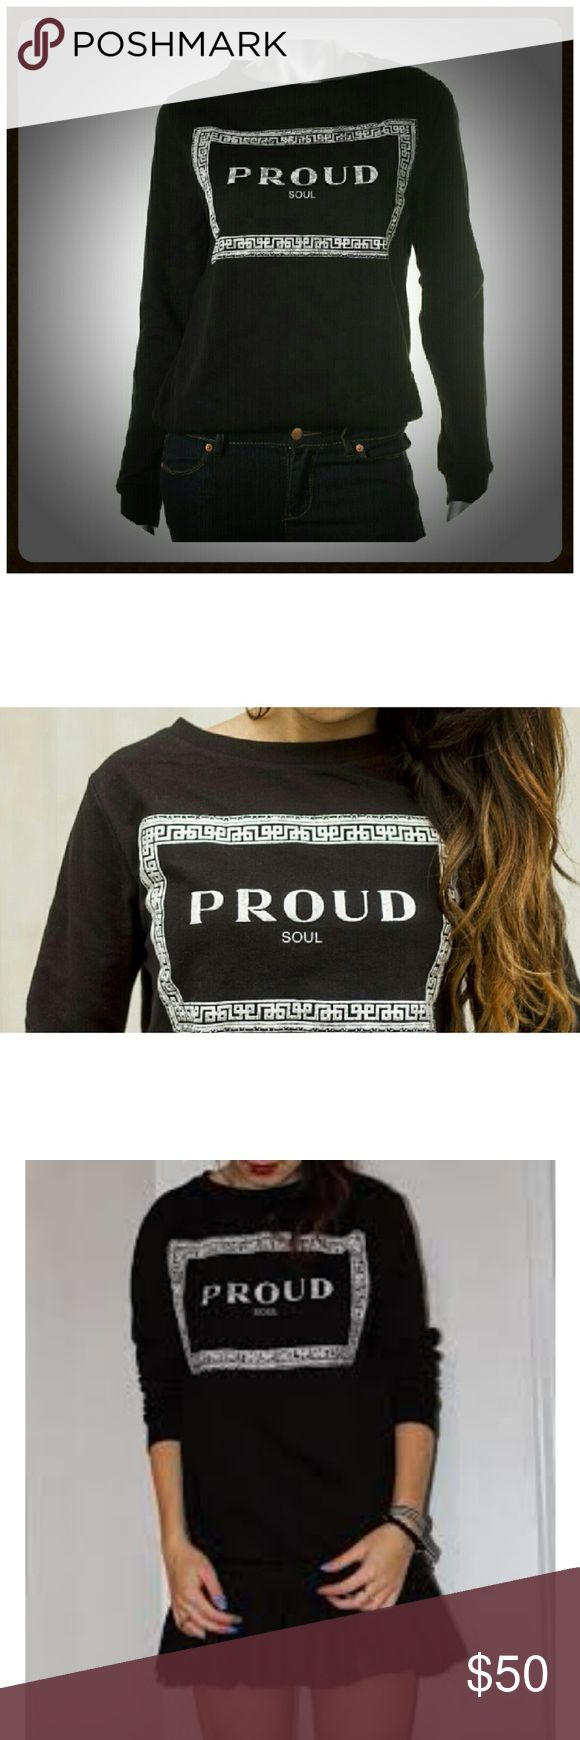 CM SALE*GIFT*ZARA Proud Soul Sweatshirt NWT S CYBER MONDAY SALE - PRICE IS ABSOLUTELY FIRM.   MAKES AN A*M*A*Z*I*N*G GIFT   Soft black, comfy sweatshirt with PROUD SOUL print graphic. Lightweight sweatshirt 95% cotton, 5% elastane NWT S  BUY 3 or More and Get 20% OFF! Zara Tops Sweatshirts & Hoodies